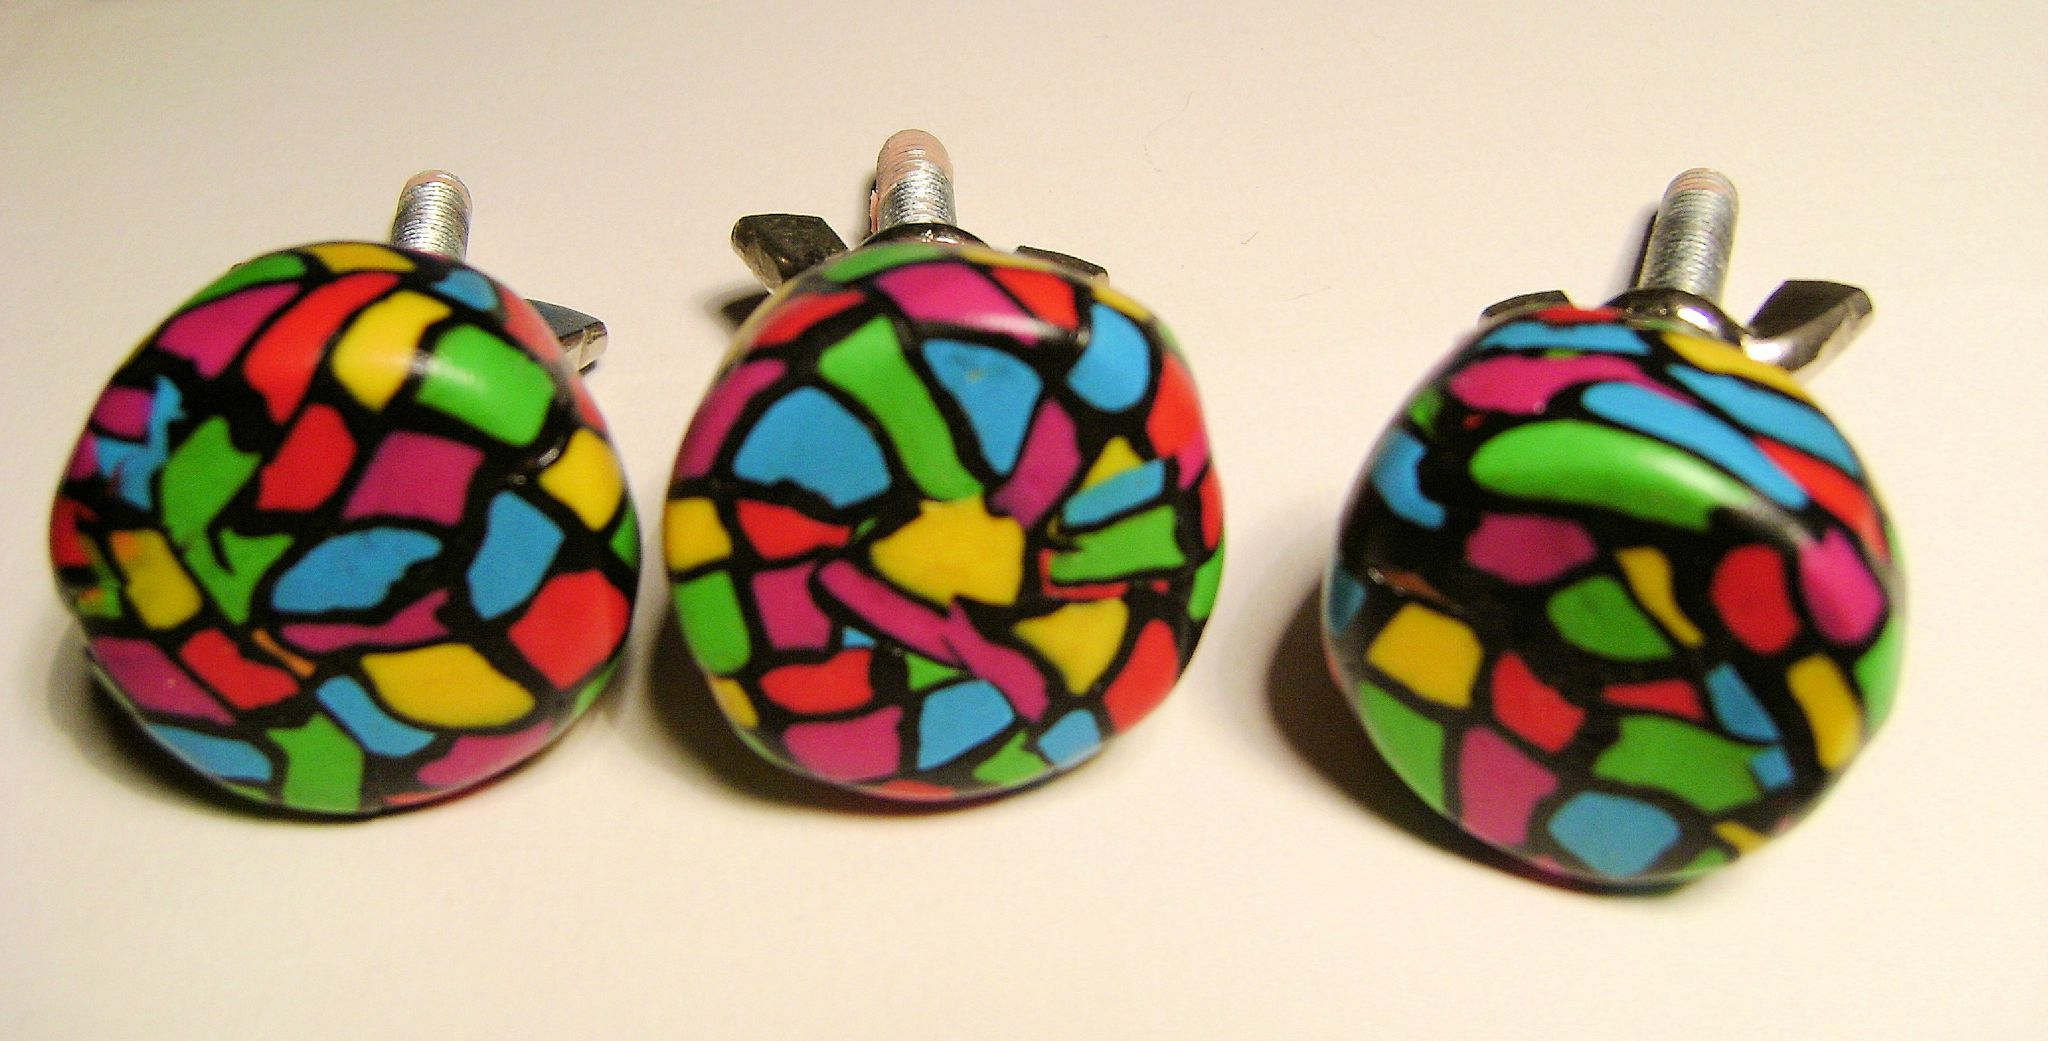 Boutons de tiroirs en p te fimo id es couleurs cr ations - Idee creation pate fimo ...